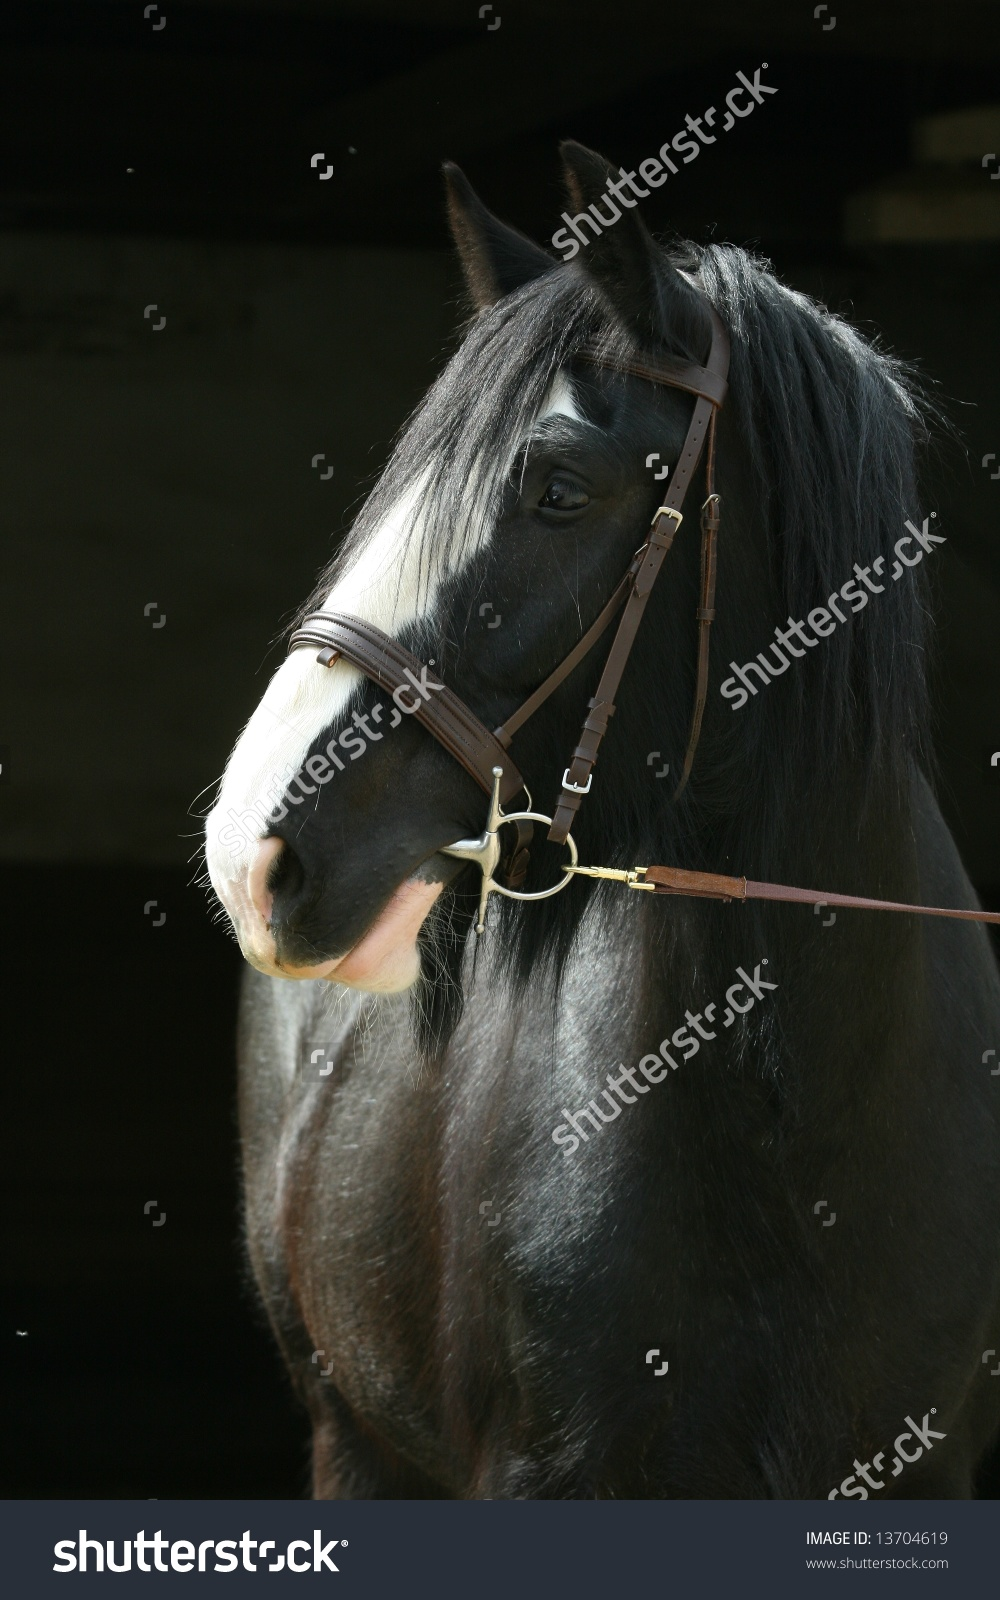 Shire Horse With Black Background Stock Photo 13704619 : Shutterstock.